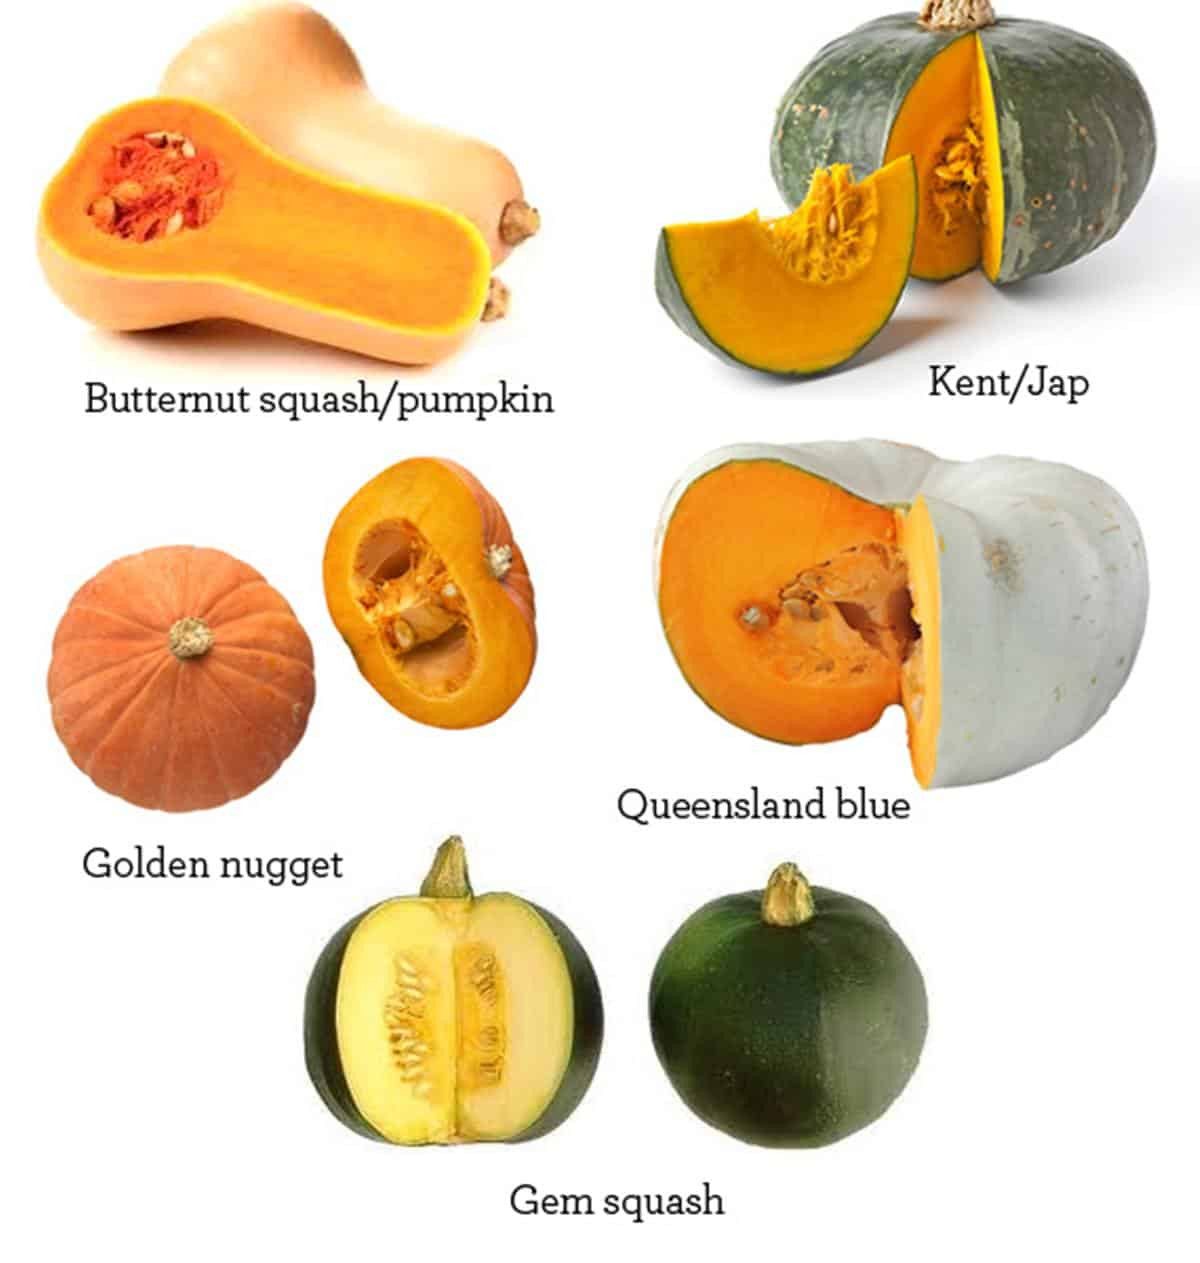 Fruits and Vegetables Vocabulary in English 10